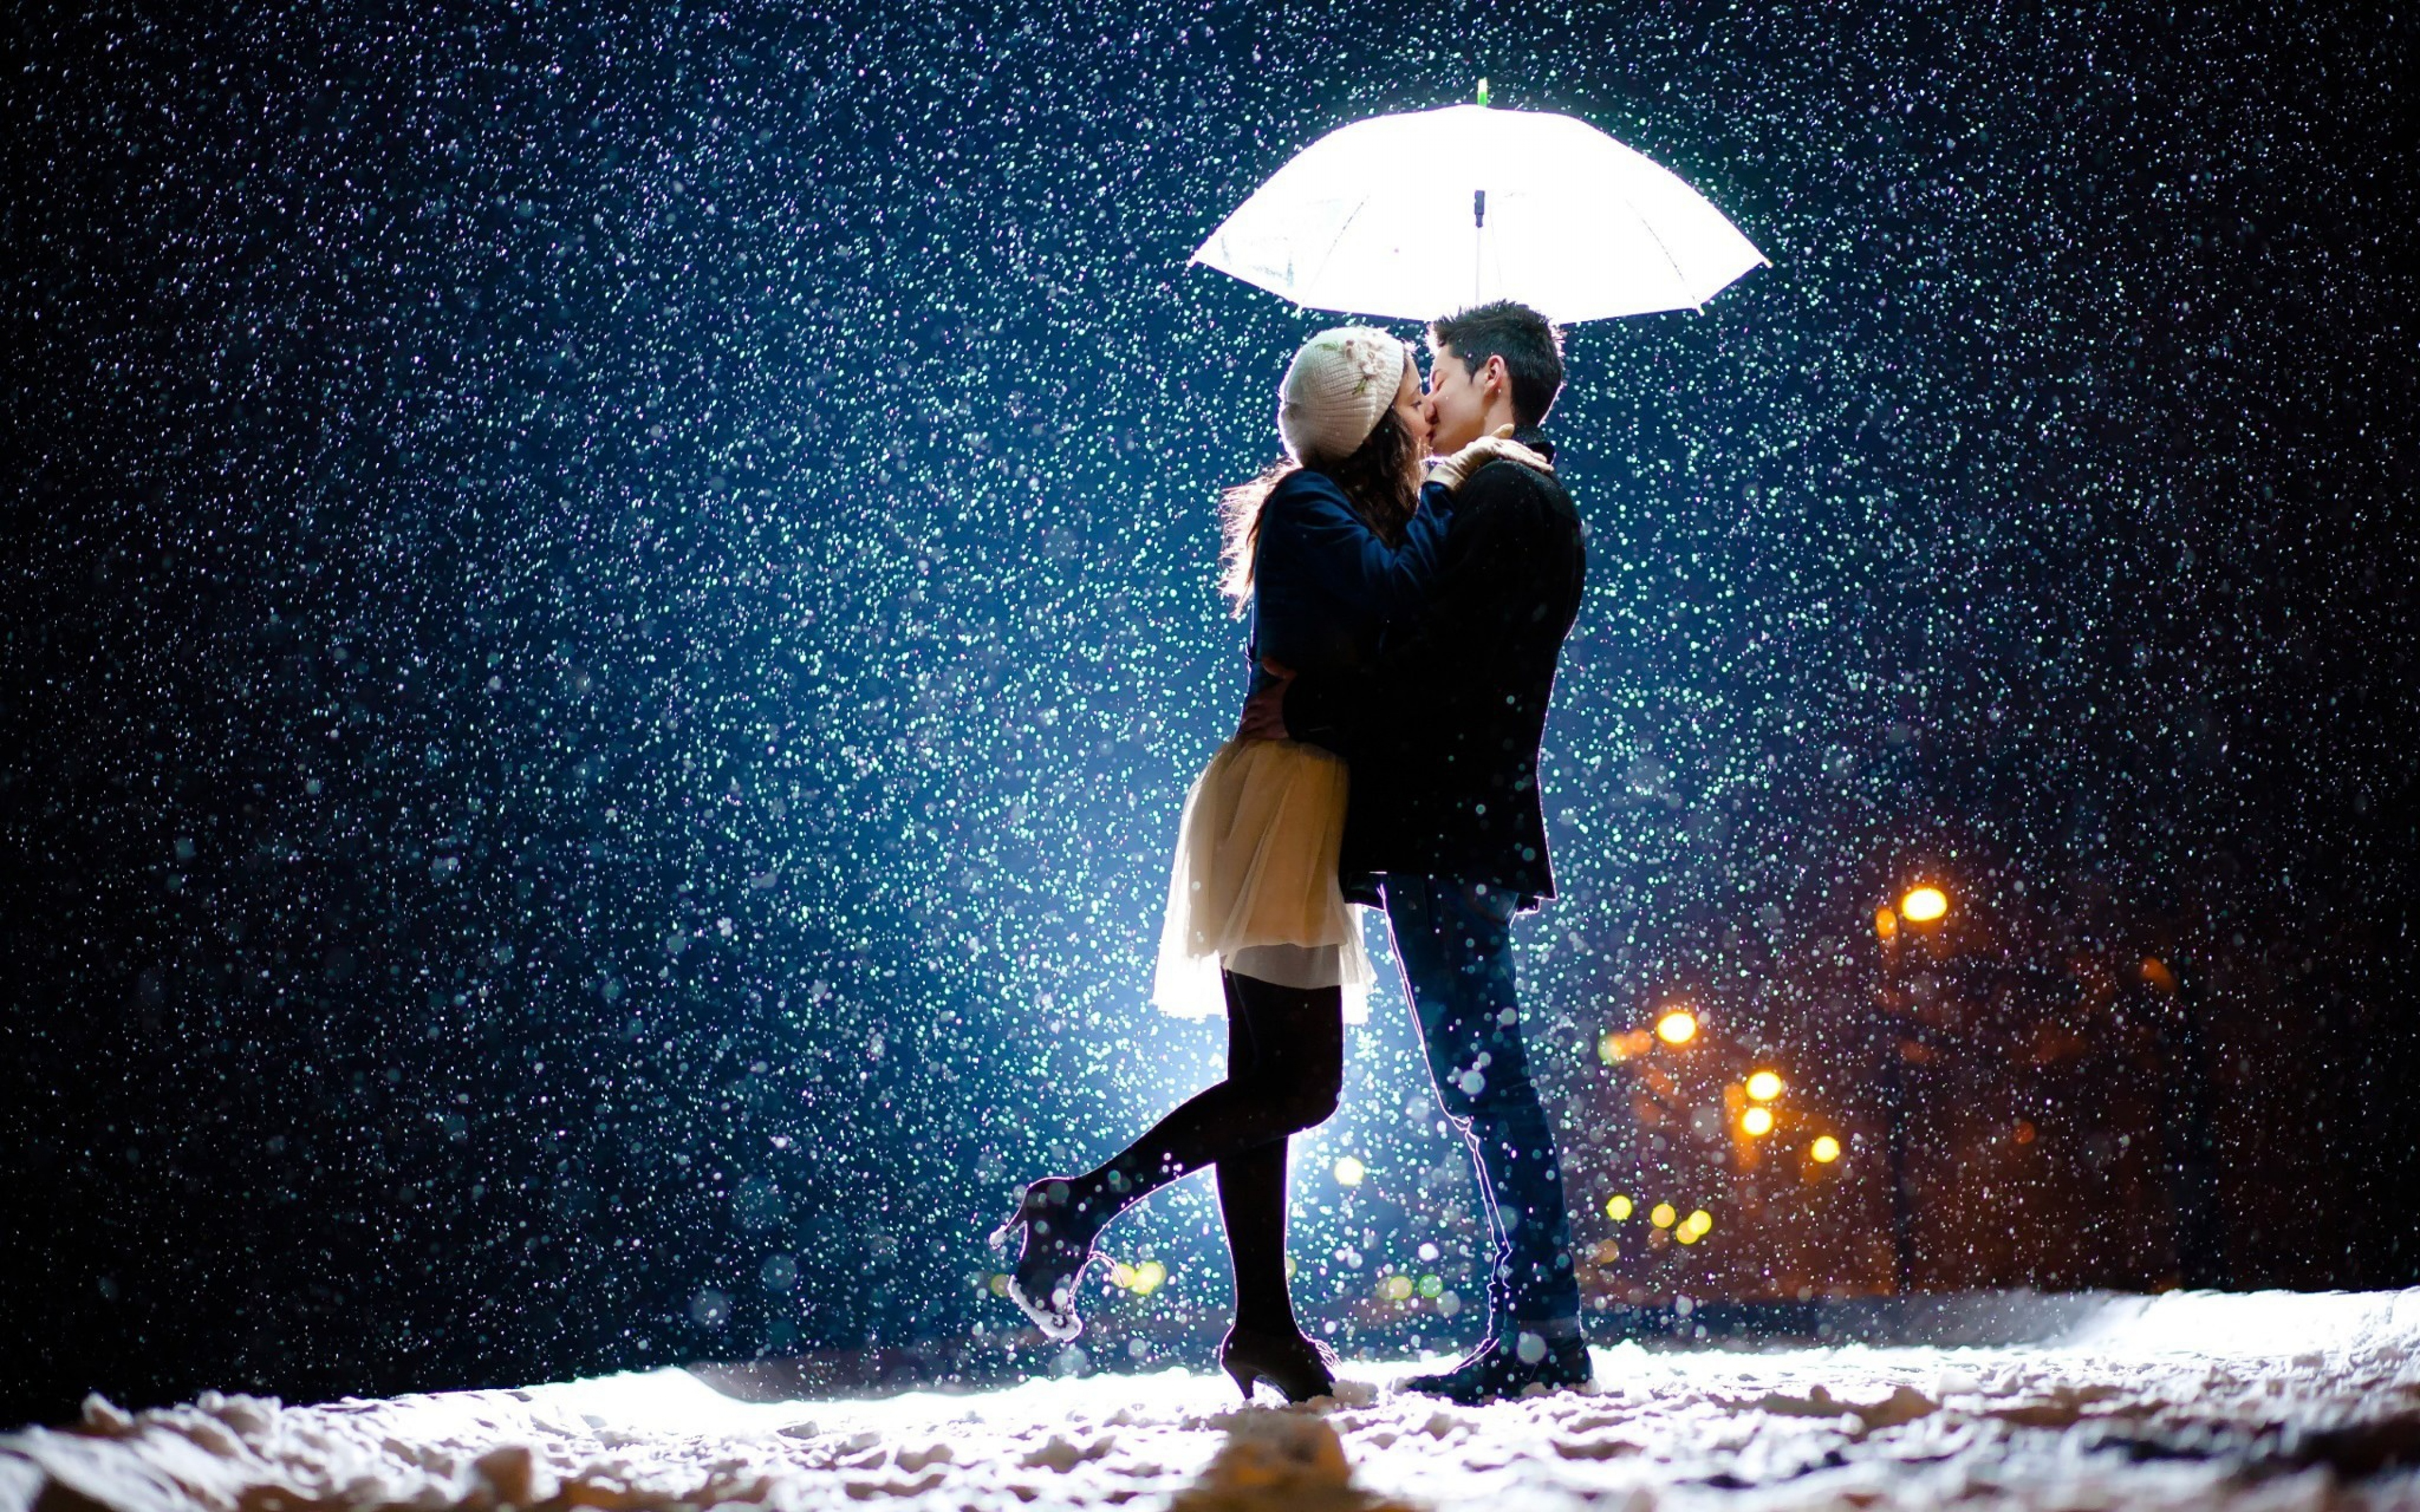 couple-kiss-in-snow.jpg